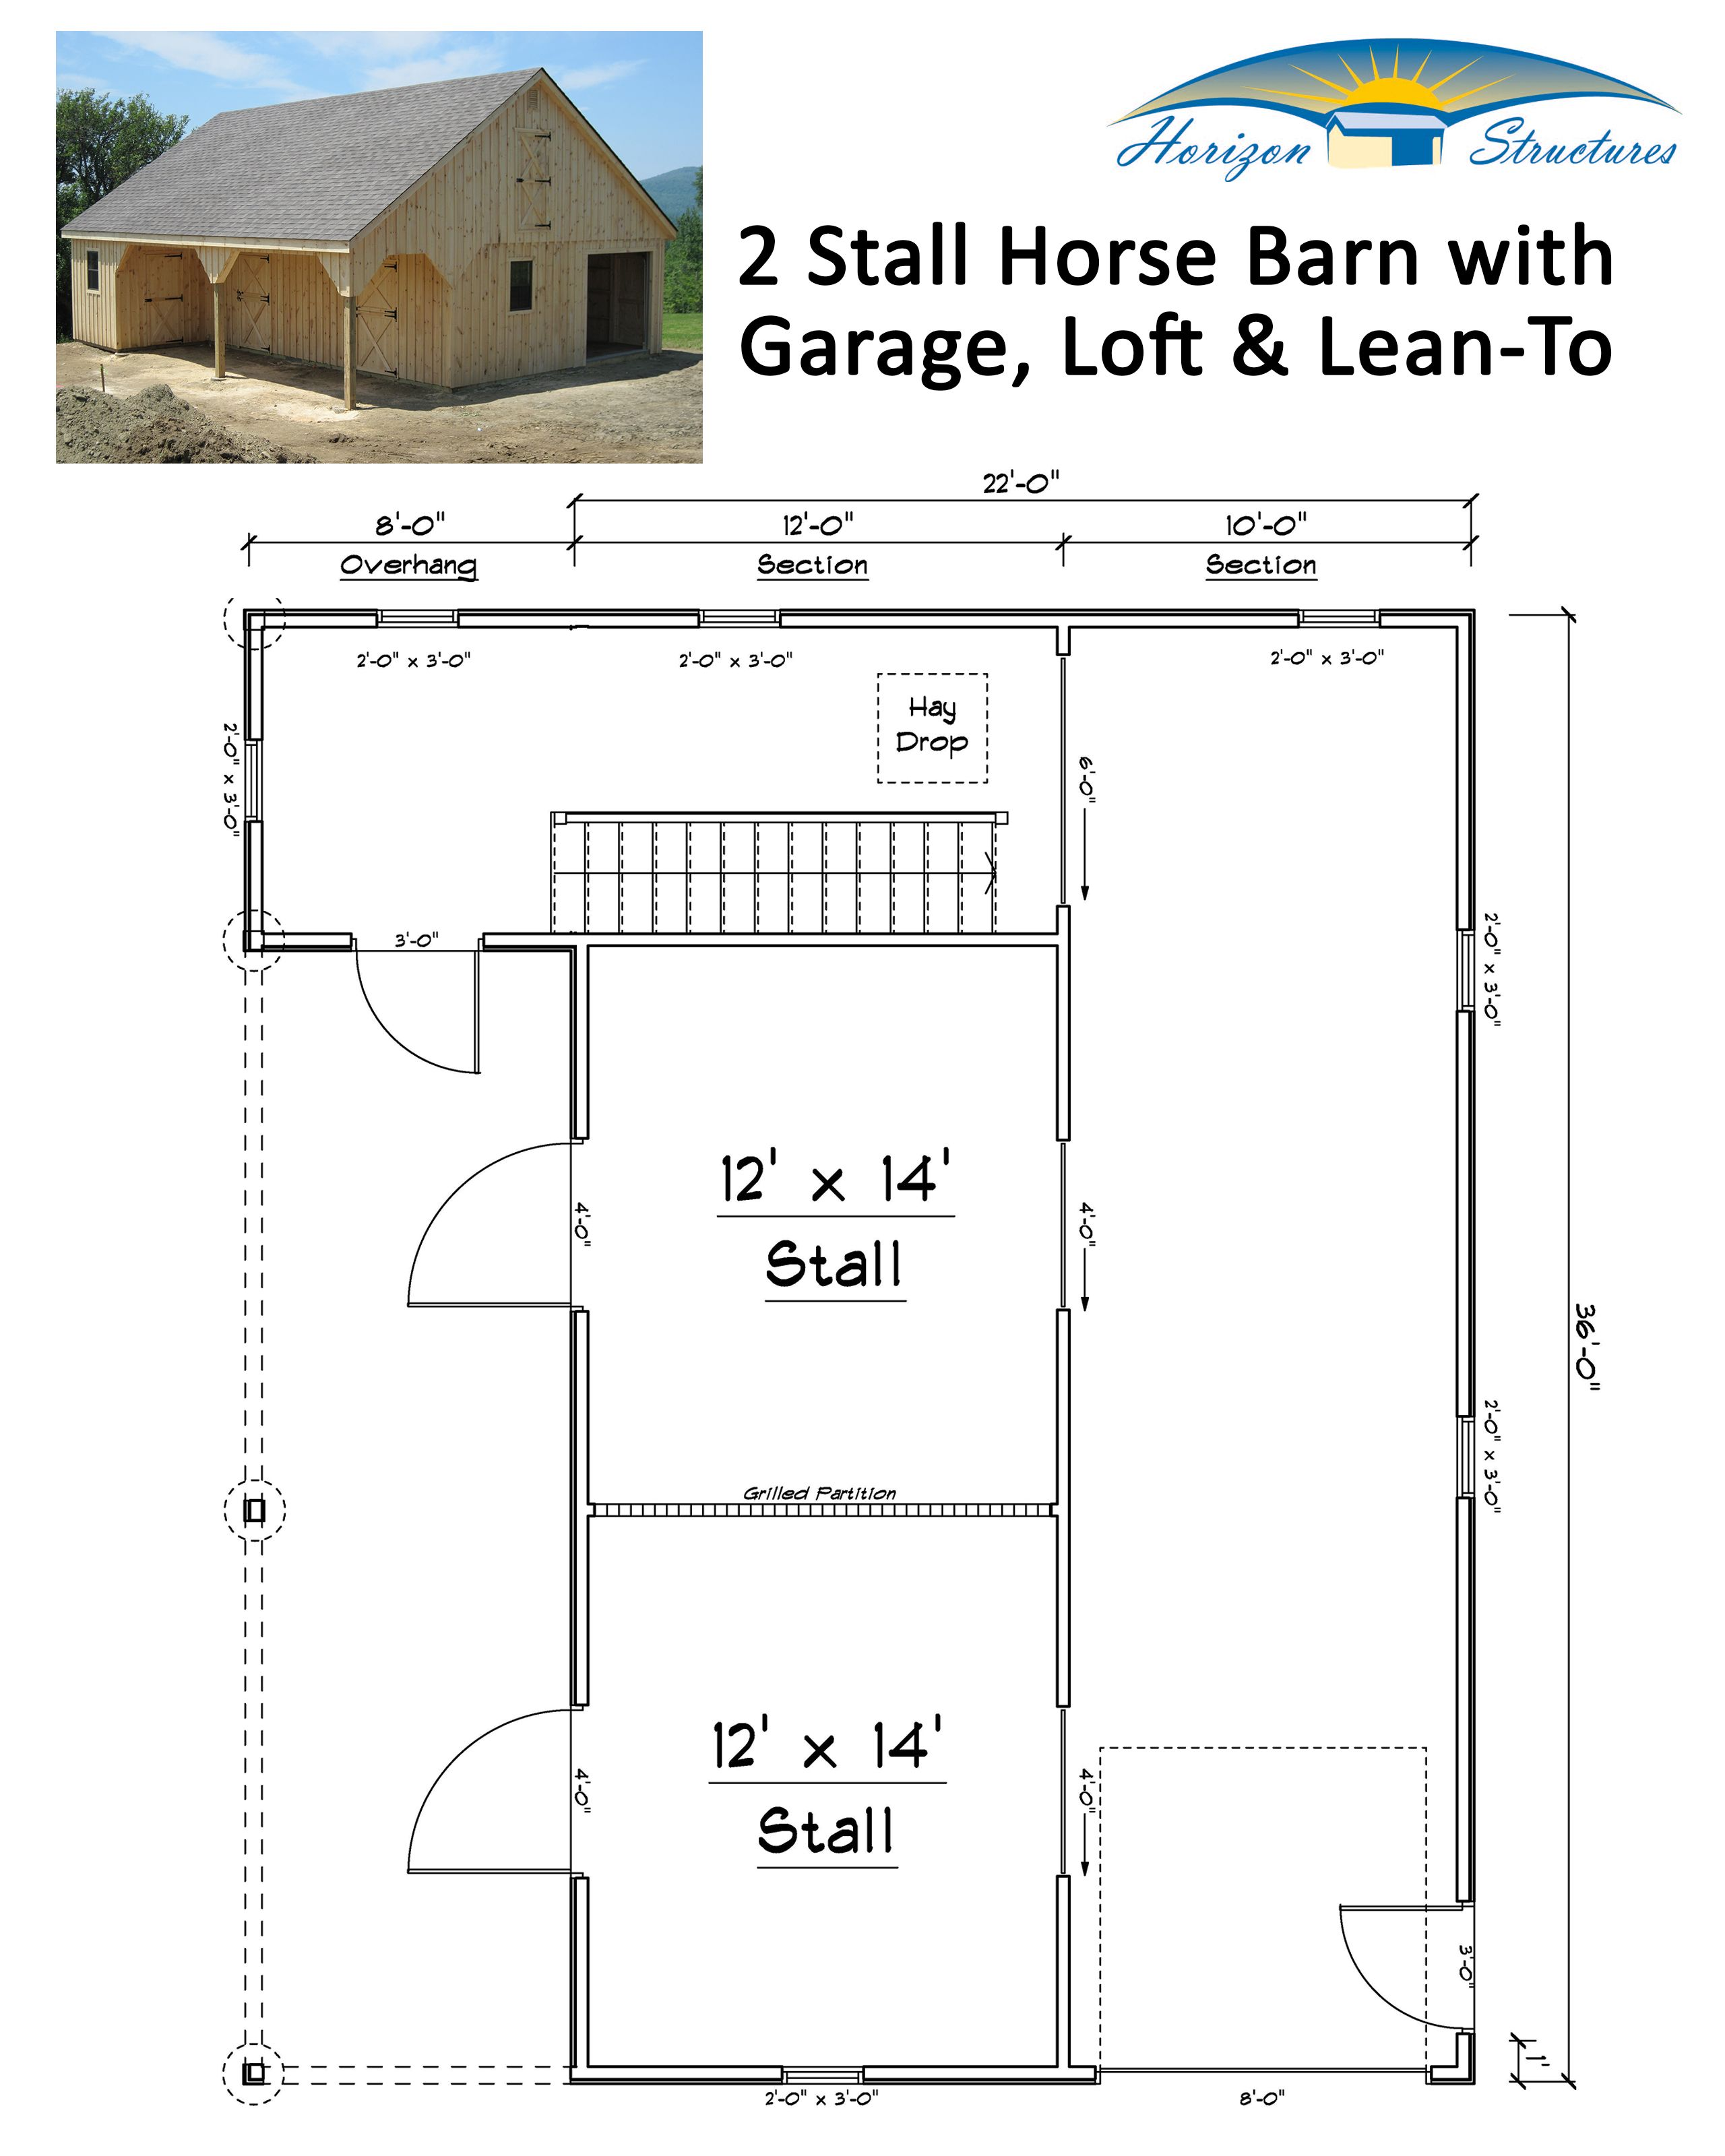 High Profile Modular Horse Barns Horizon Structures Small Horse Barns Horse Barn Plans Horse Barn